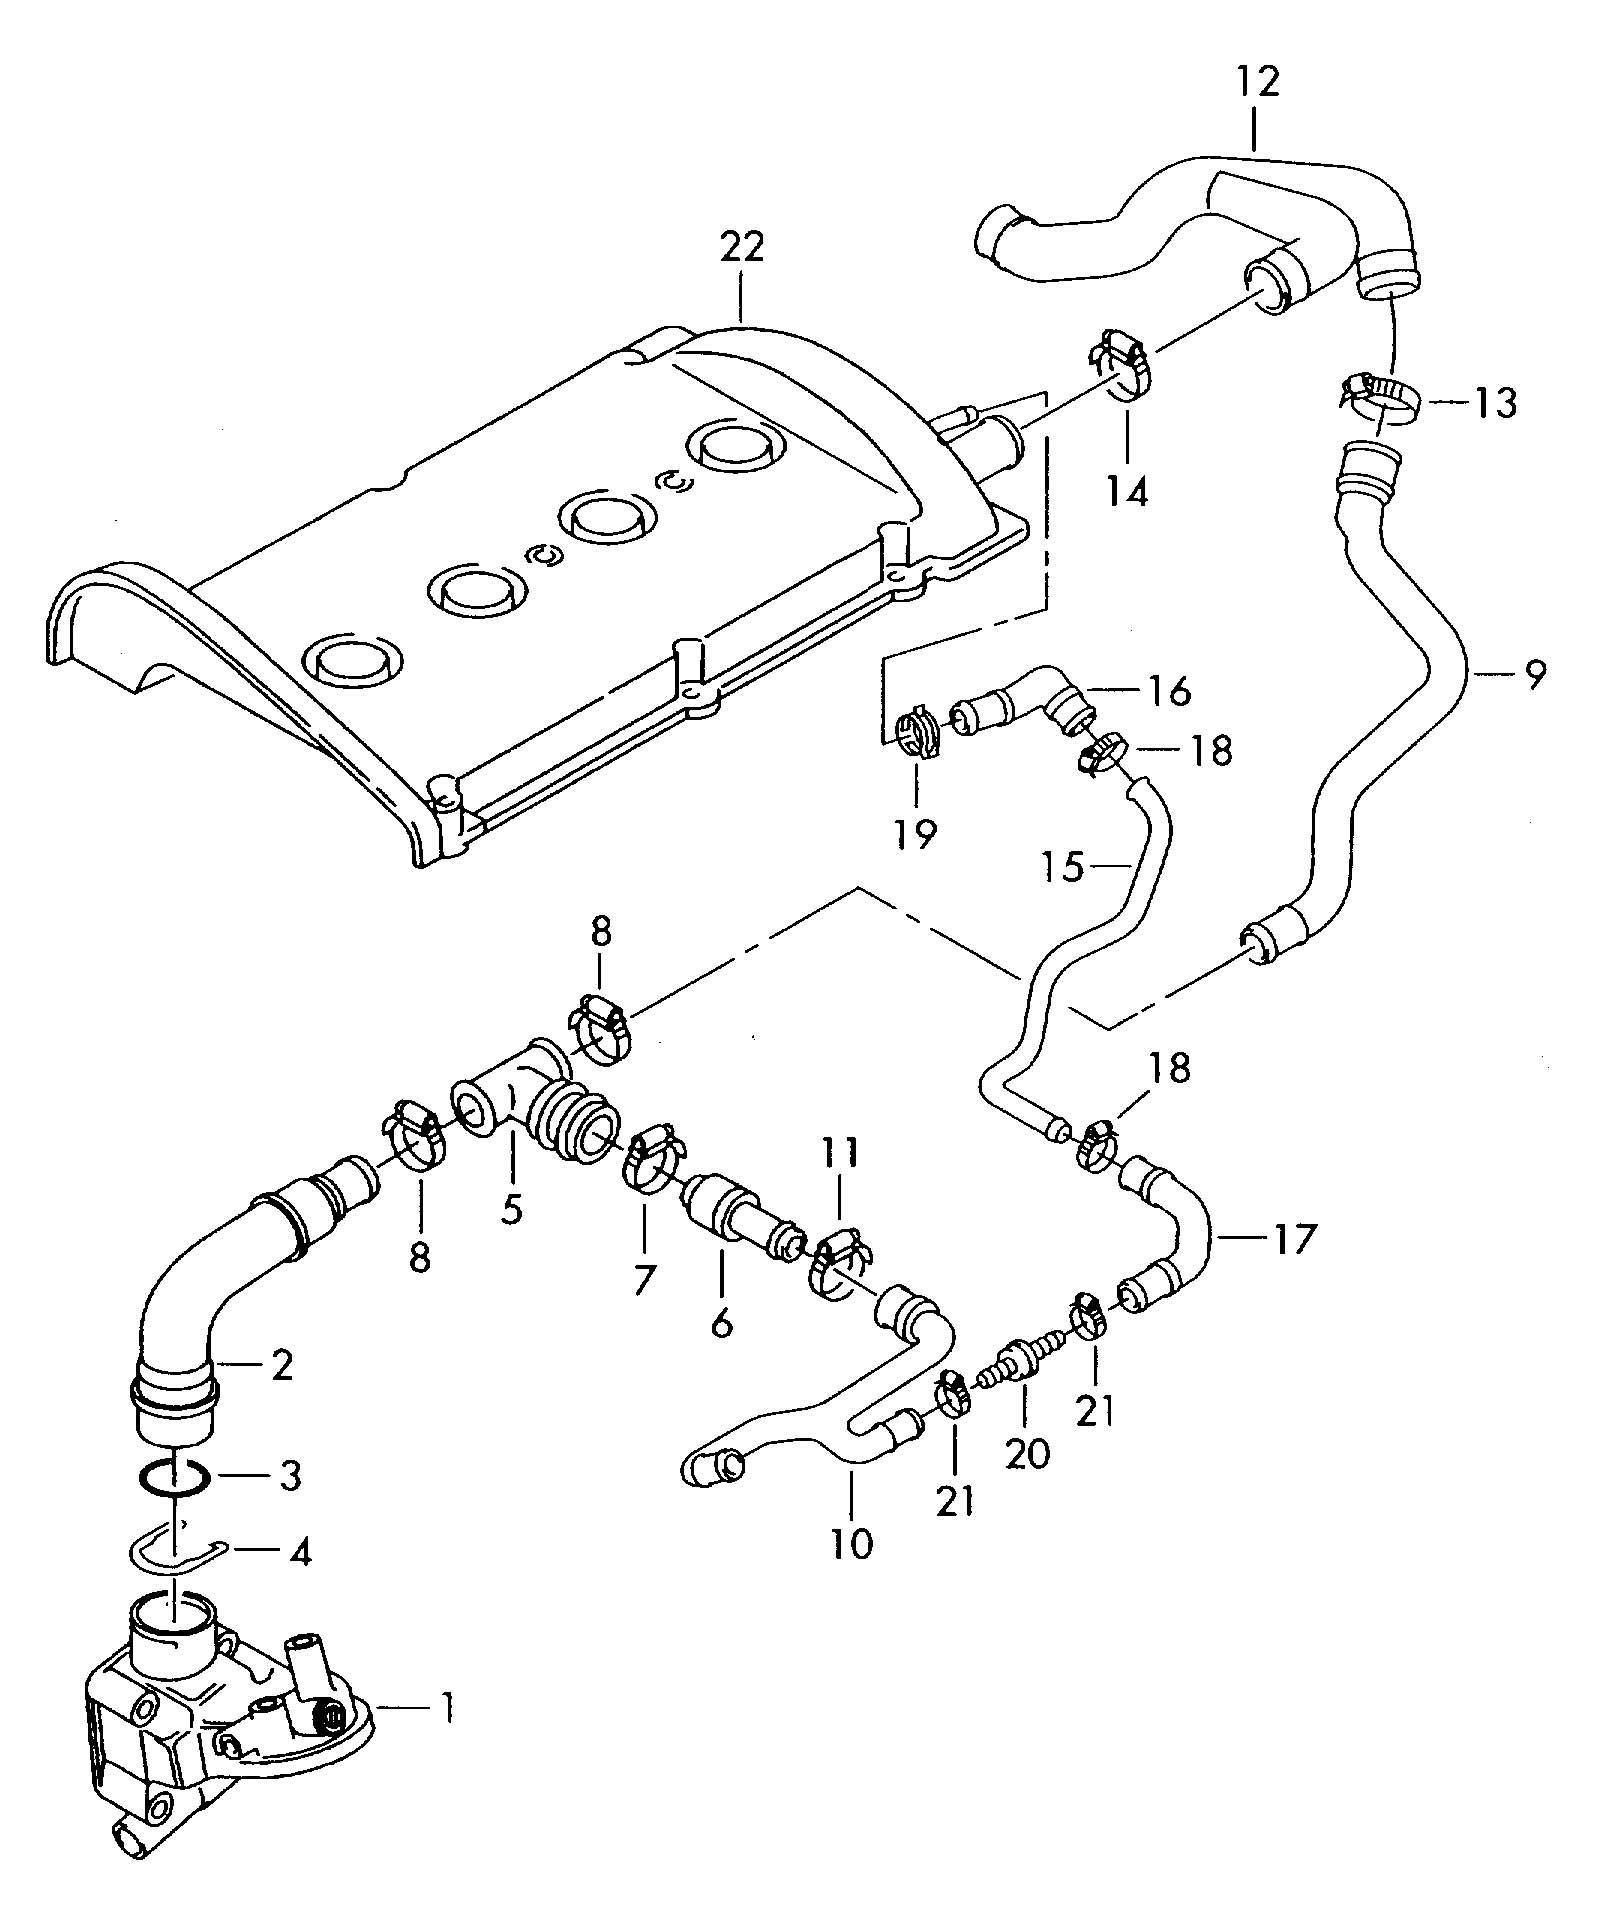 hight resolution of pictures of vw passat vacuum hose diagram